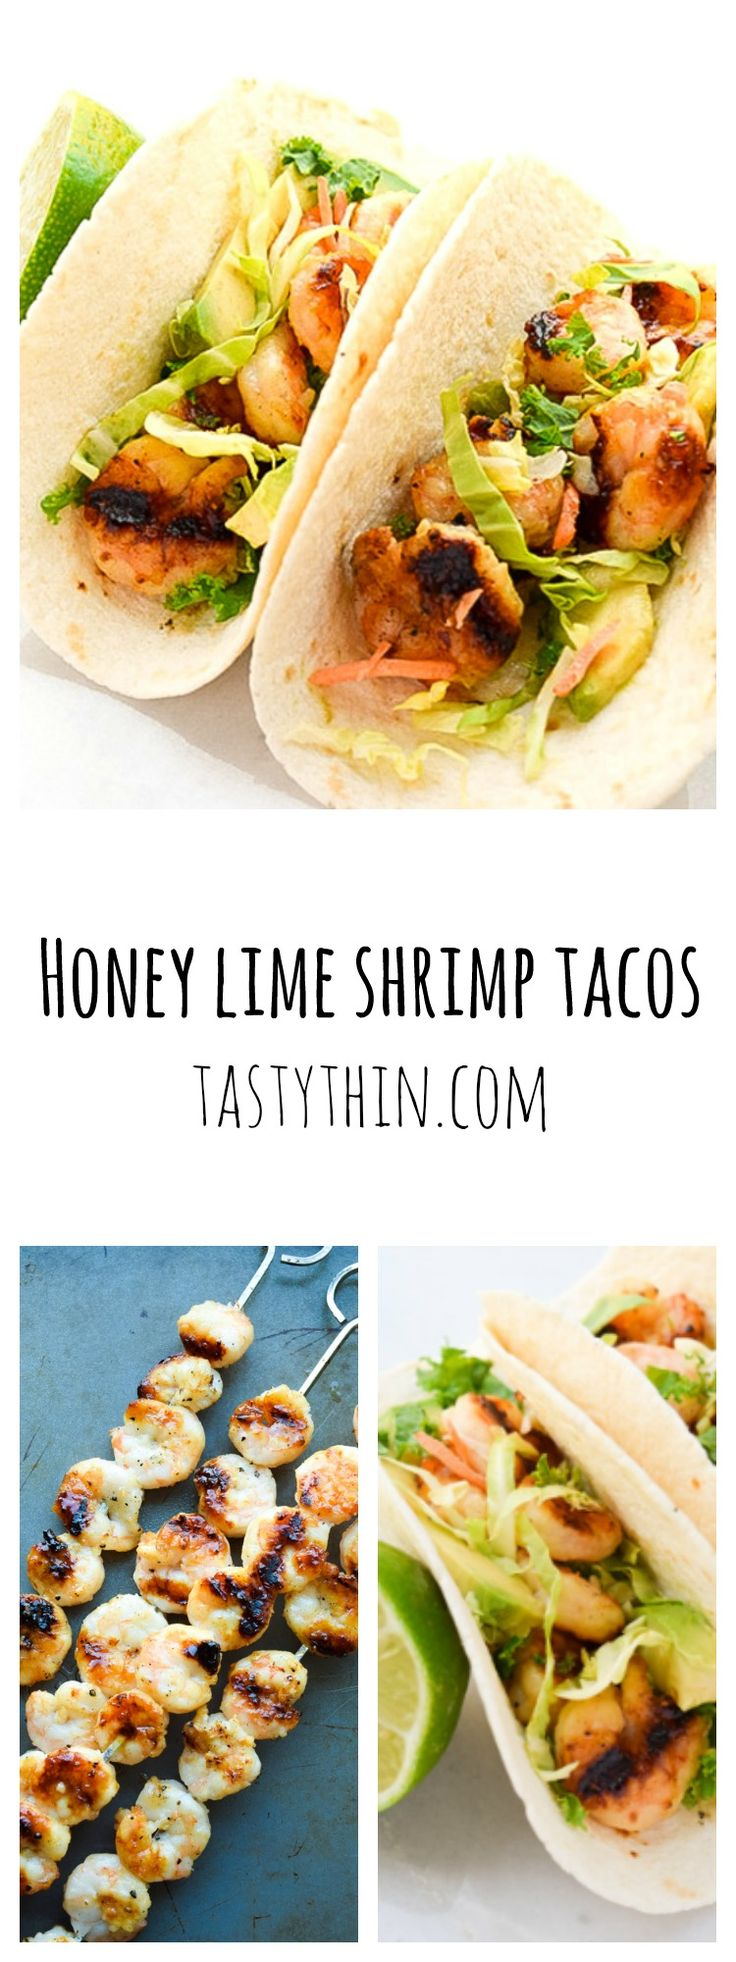 Honey Lime Shrimp Tacos - honey, lime, and garlic marinated shrimp topped with slaw and avocado. | tastythin.com